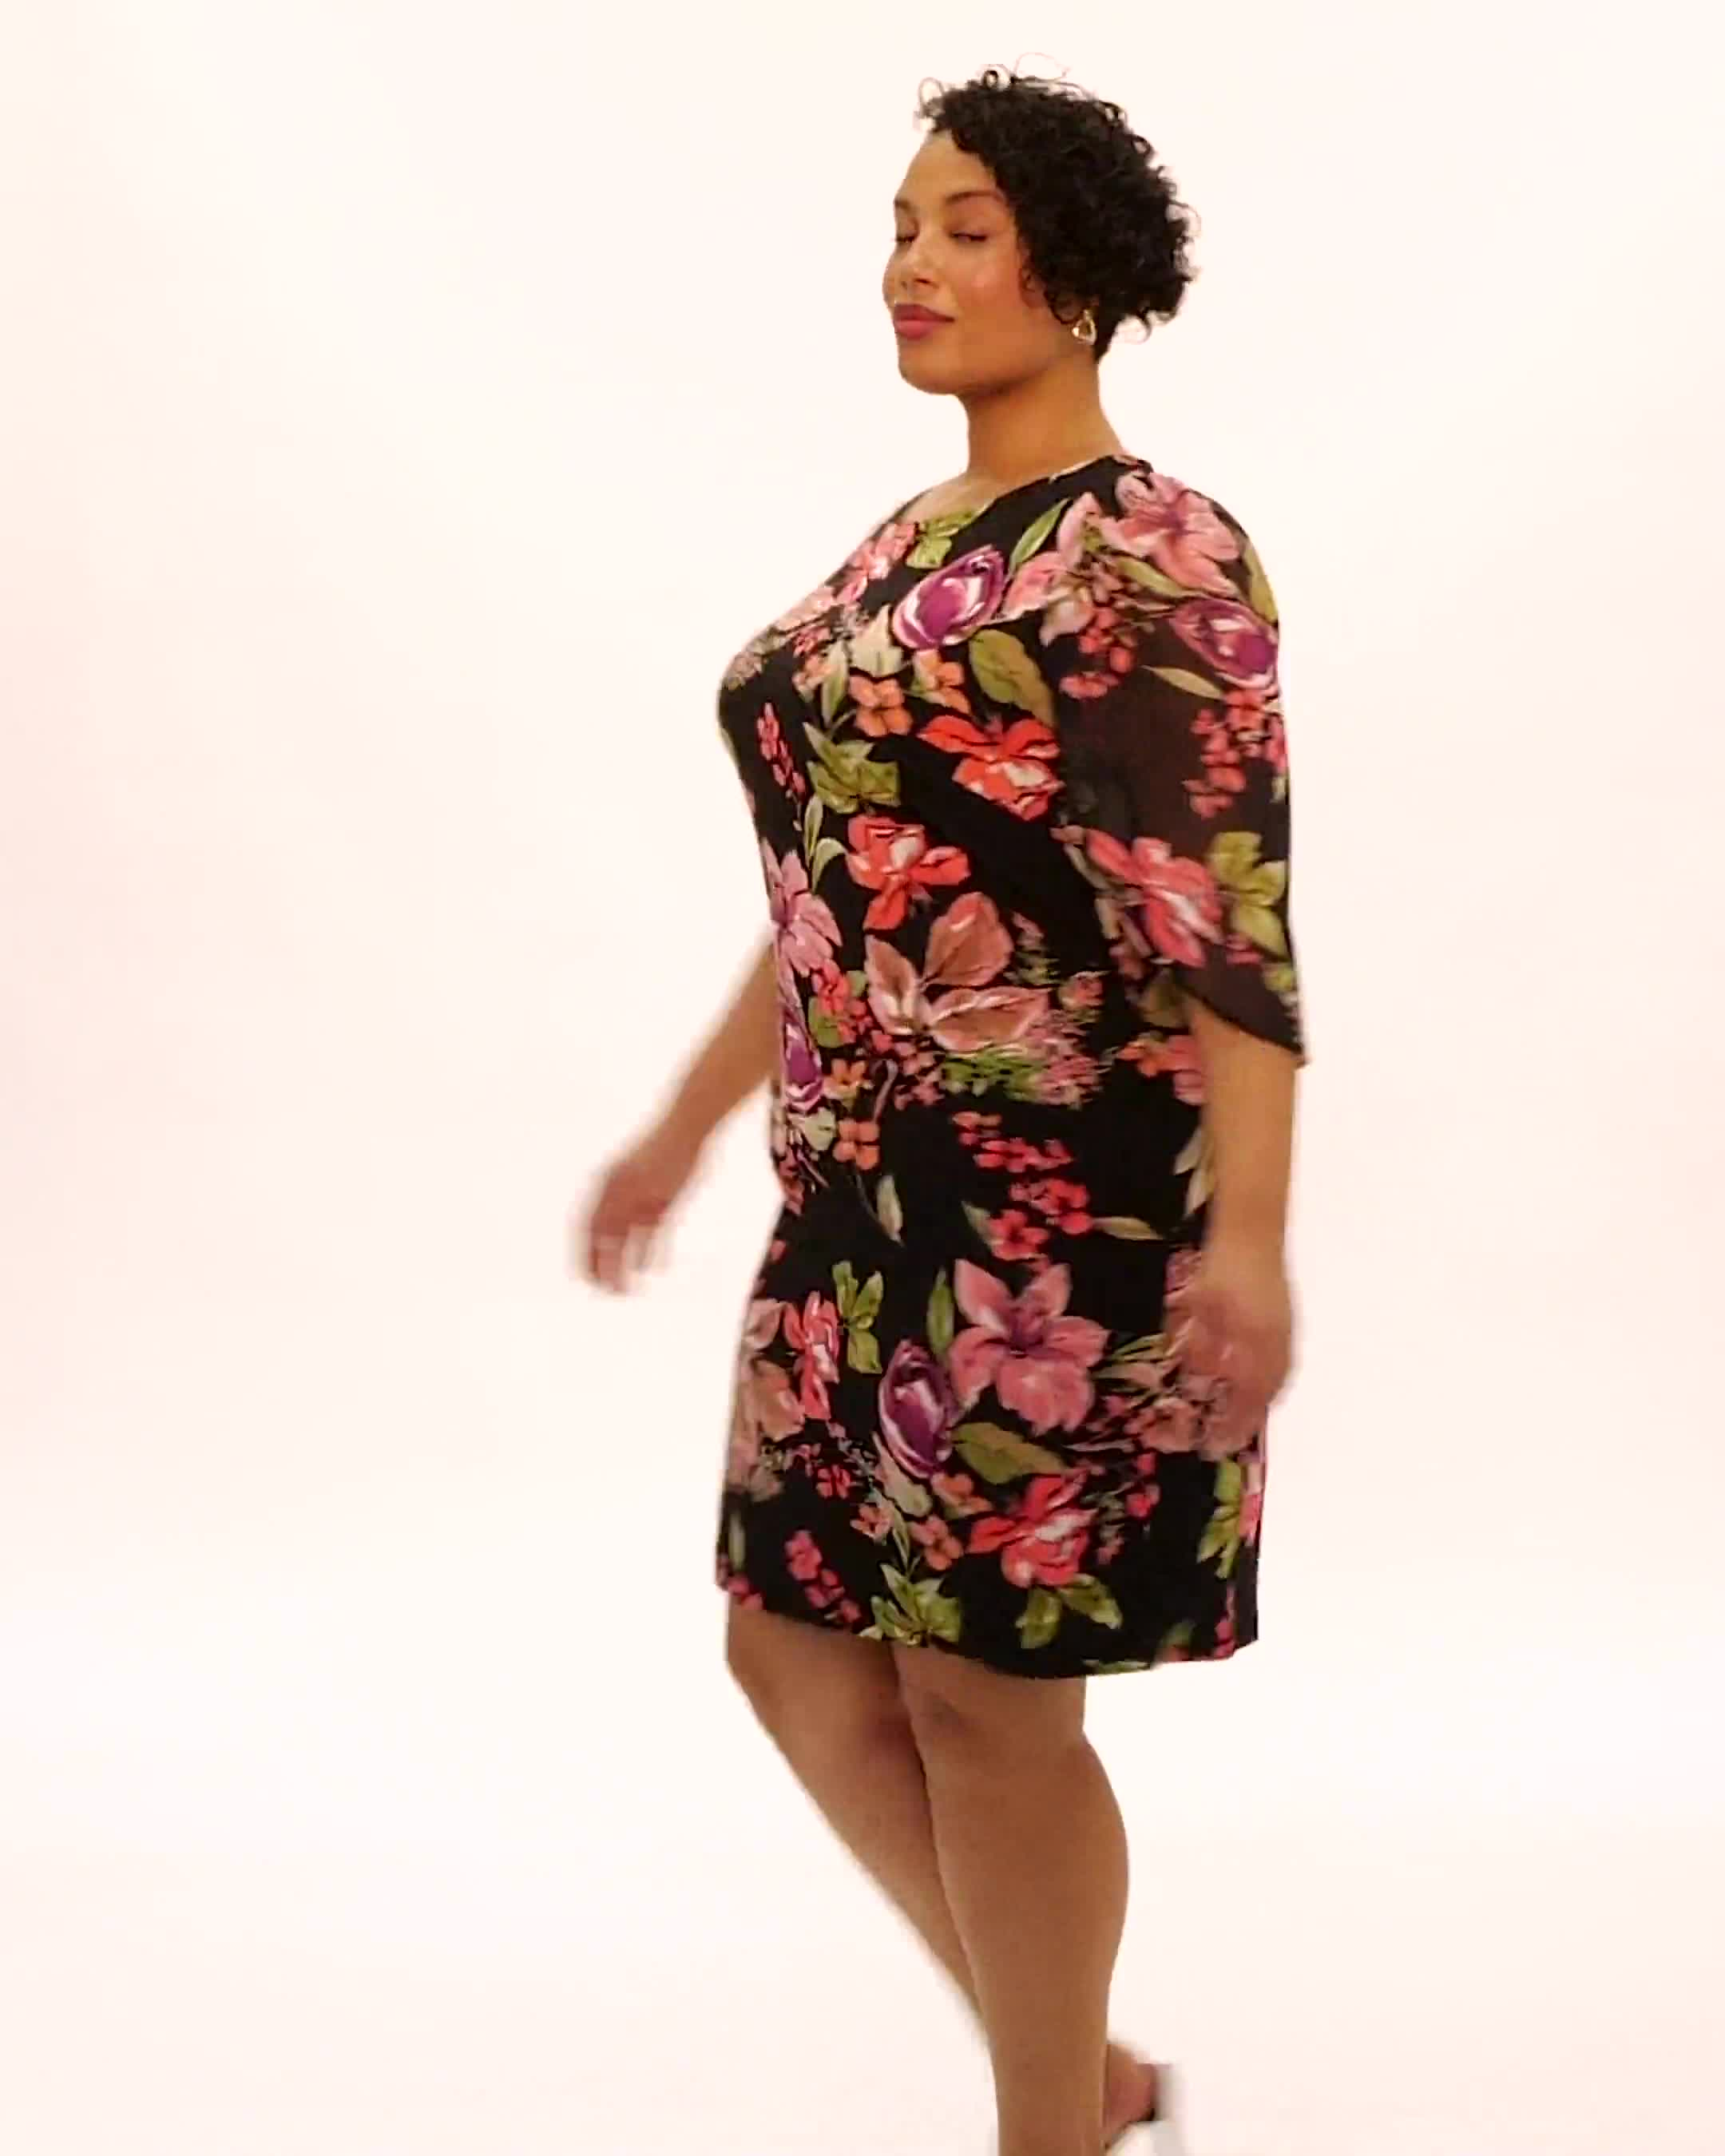 Floral Knit Dress with Chiffon Sleeves - Video